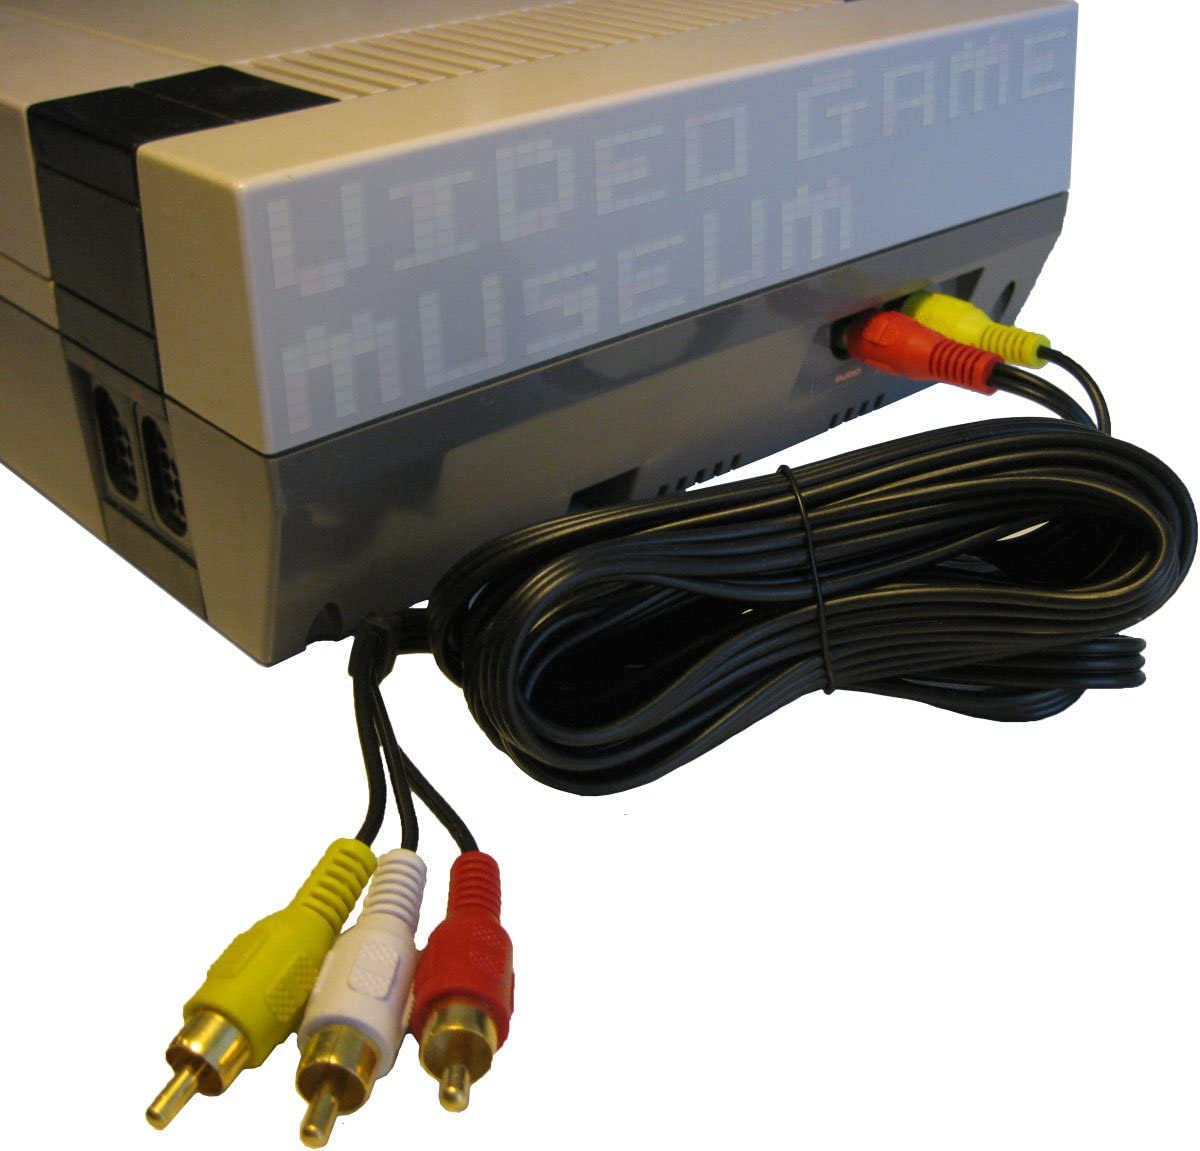 Hook up nes without rf switch